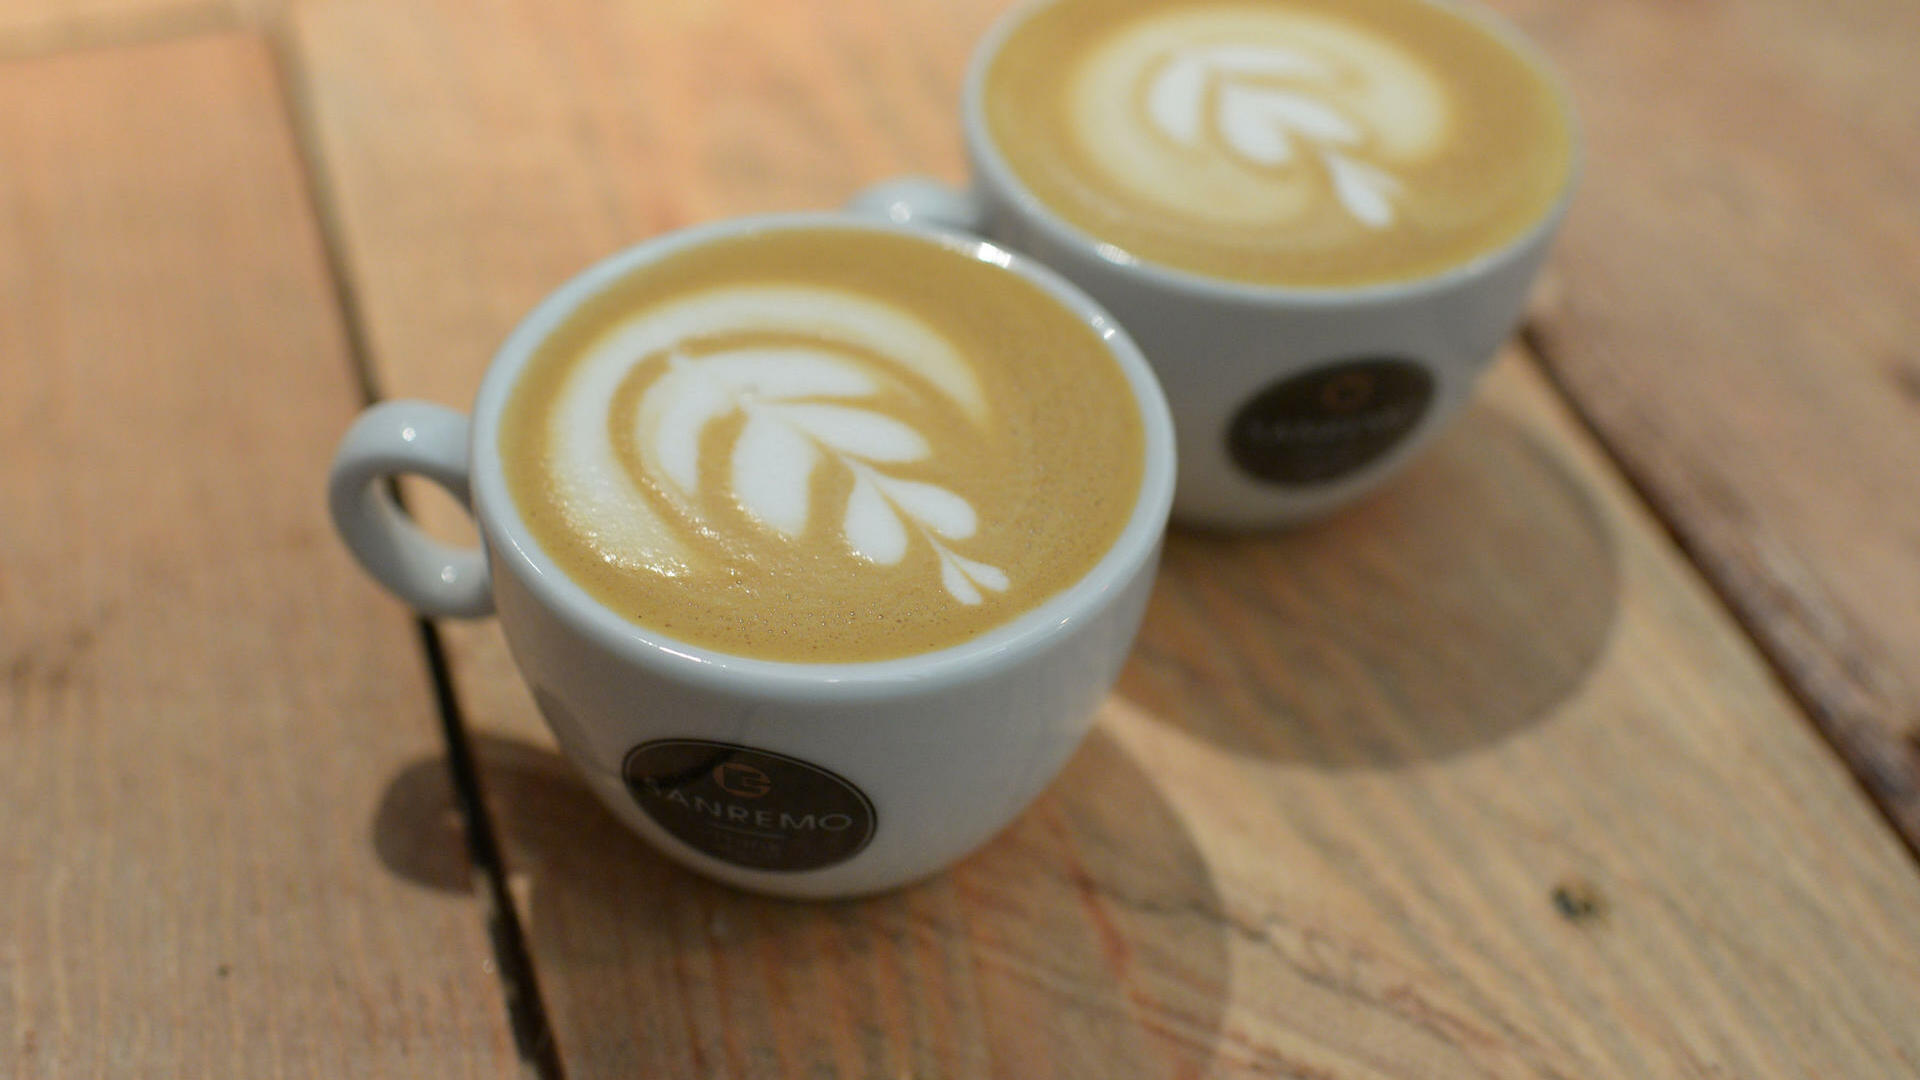 Signature-Latte-Art-Kaffe Quelle: dpa